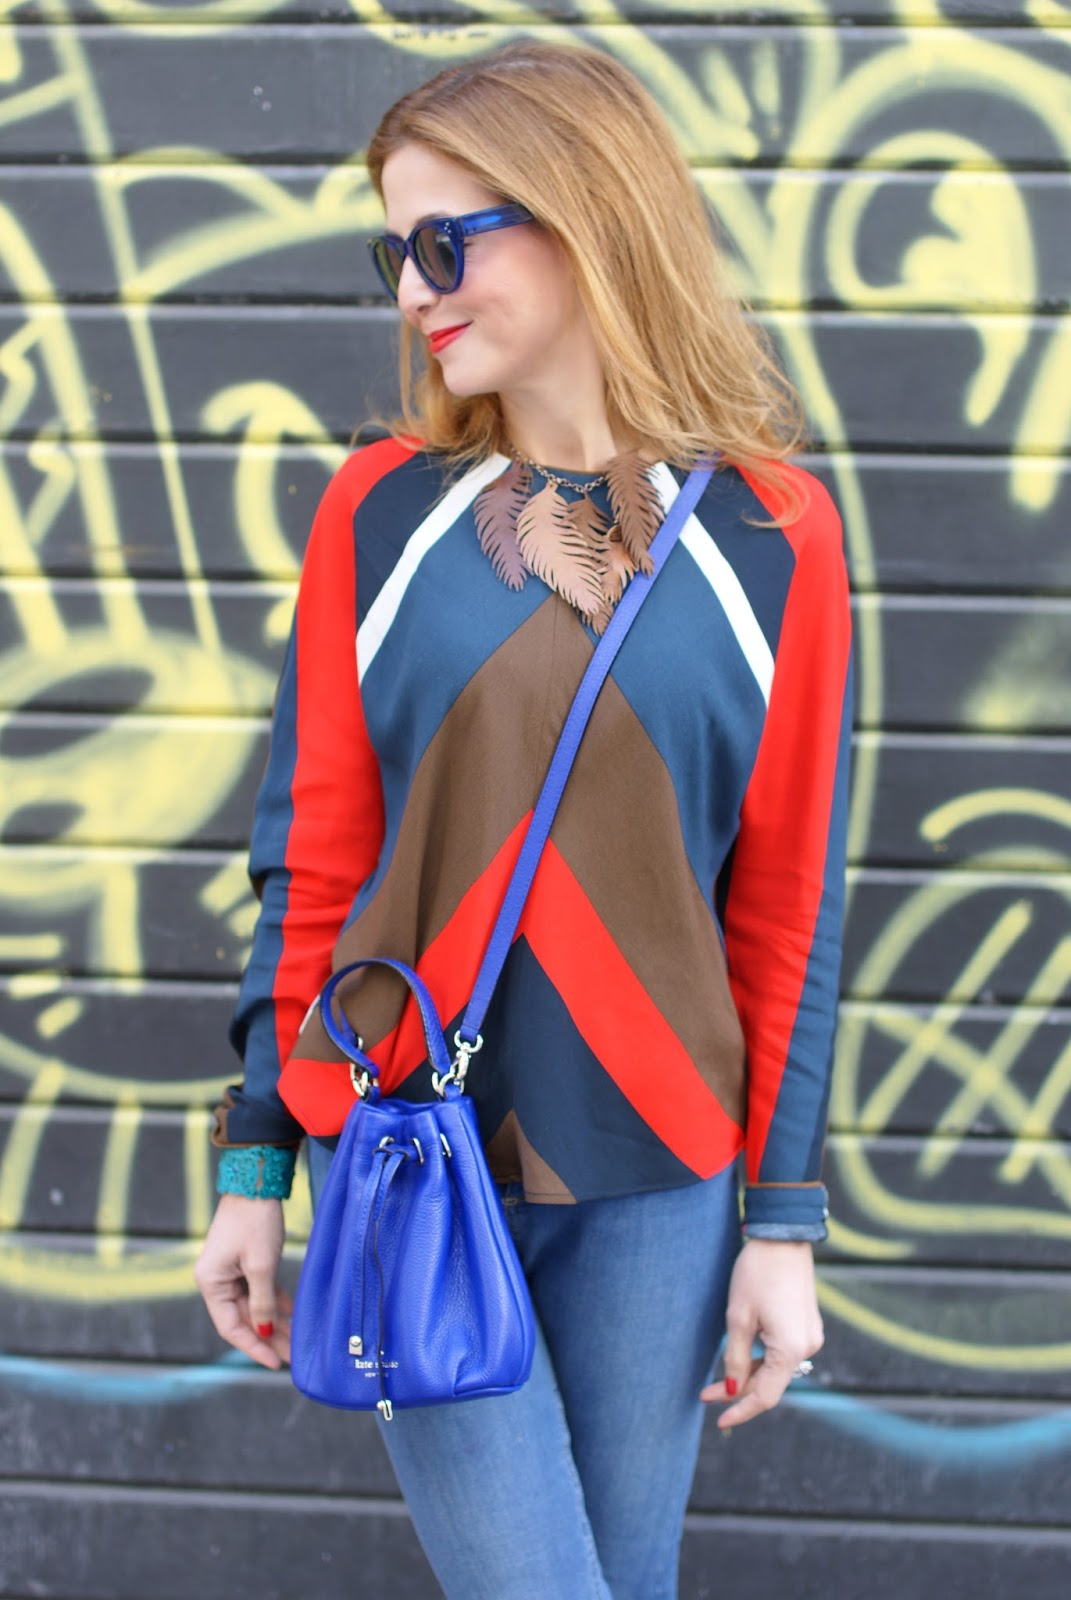 Kate Spade Wyatt mini bucket bag and Hype Glasses on Fashion and Cookies fashion blog, fashion blogger style